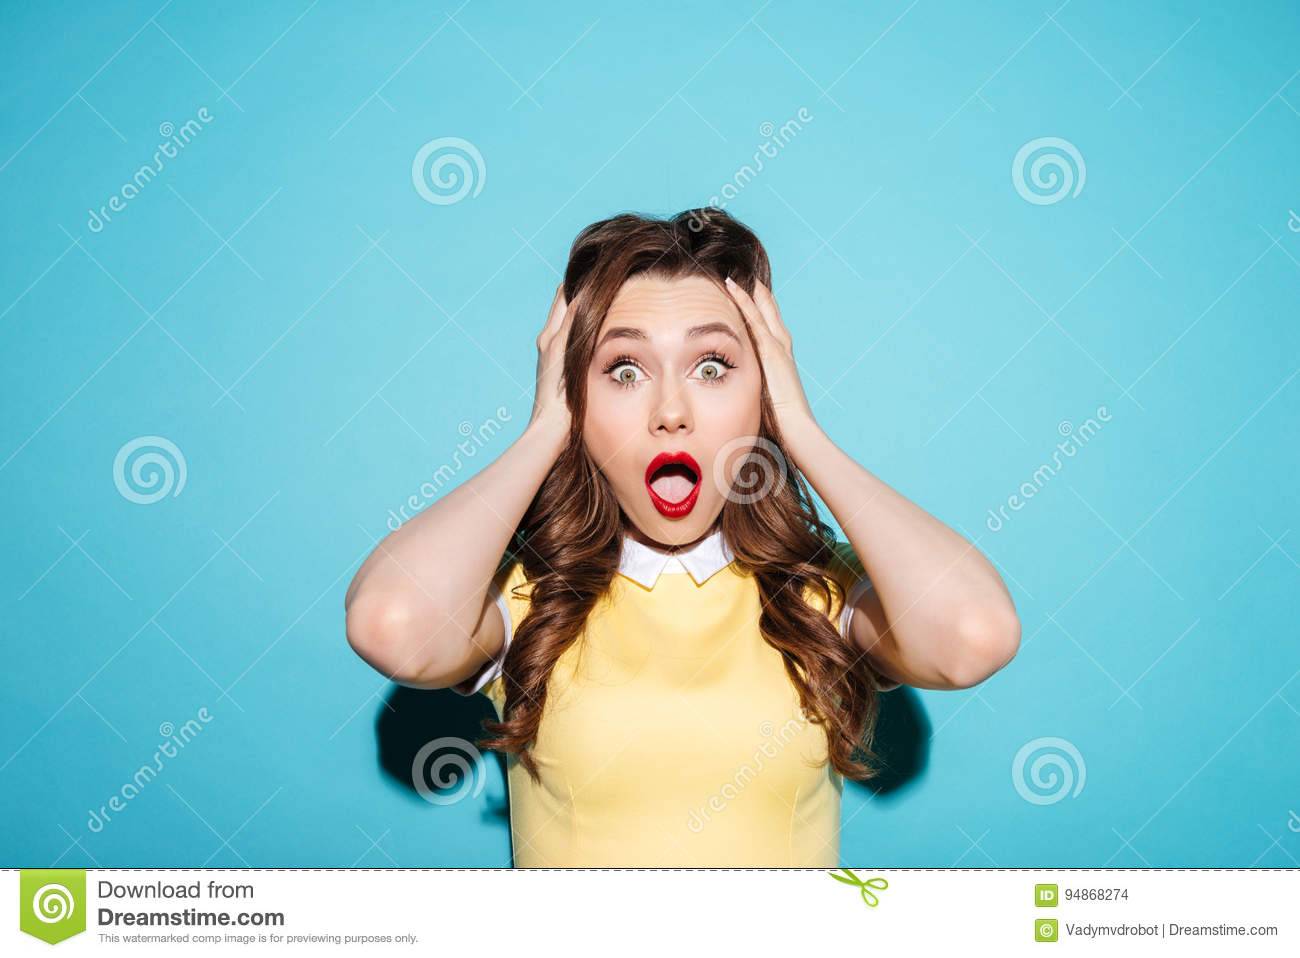 Download Portrait Of A Surprised Shocked Woman In Dress Stock Photo - Image of female, looking: 94868274